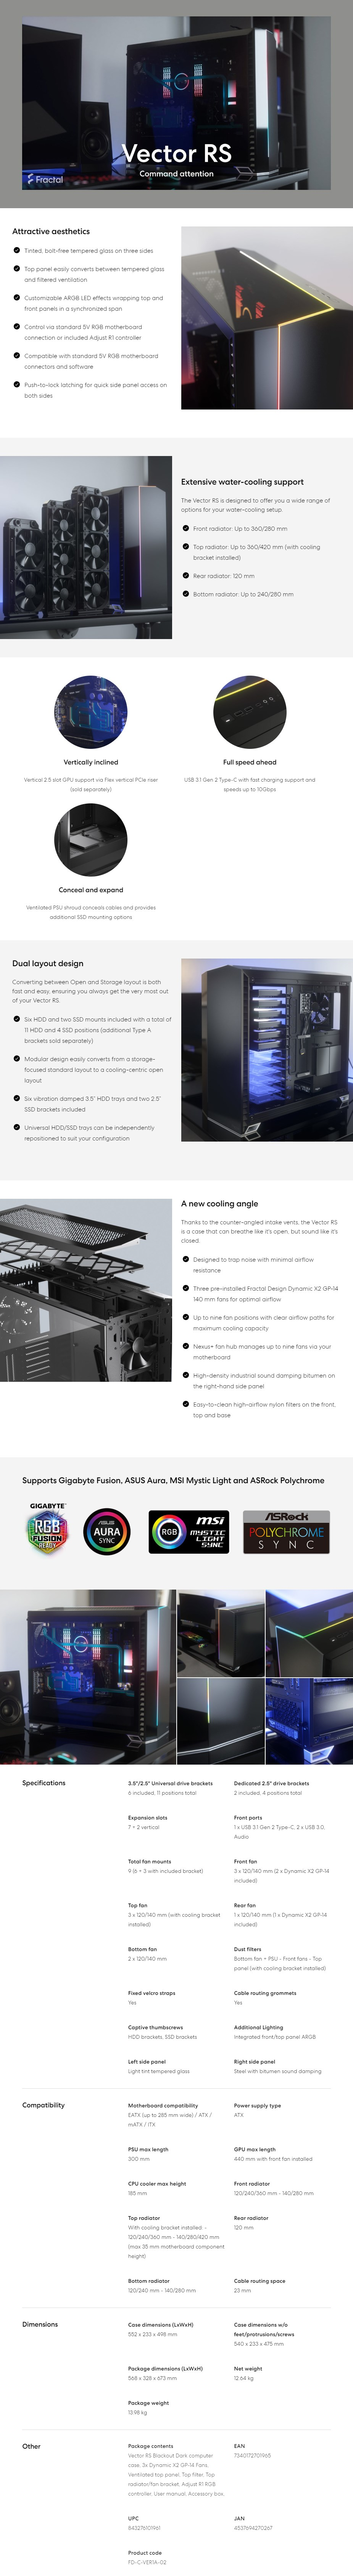 A large marketing image providing additional information about the product Fractal Design Vector RS Dark Tempered Glass Mid Tower Case Black - Additional alt info not provided